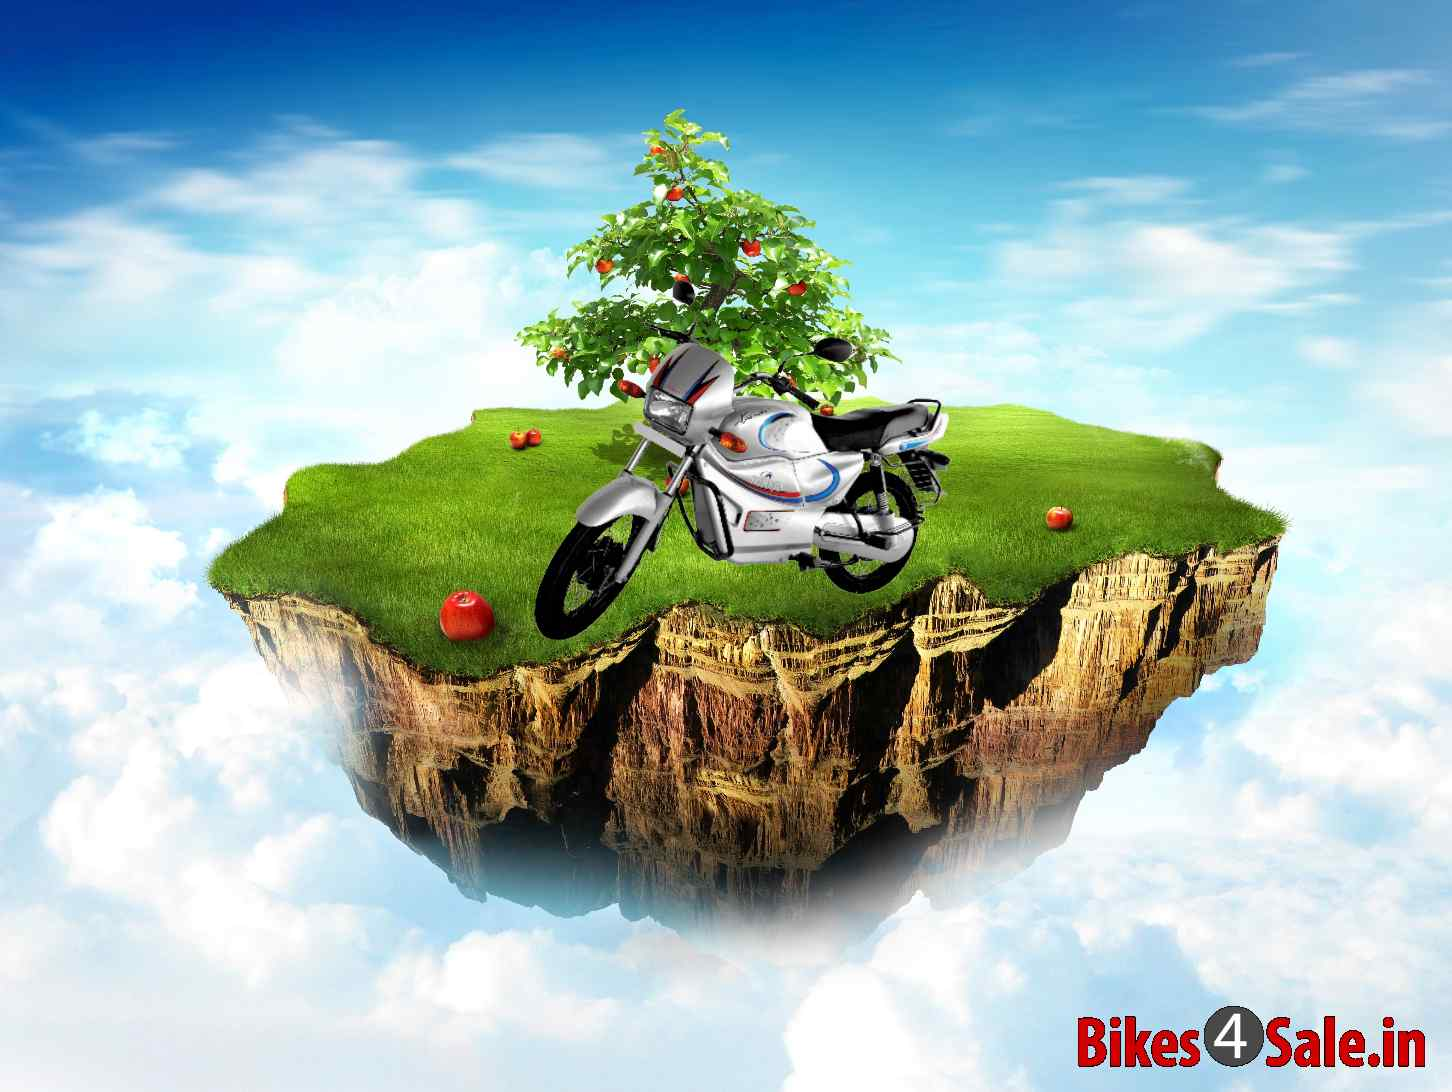 Electric Bike A1 Sureja Xplosive